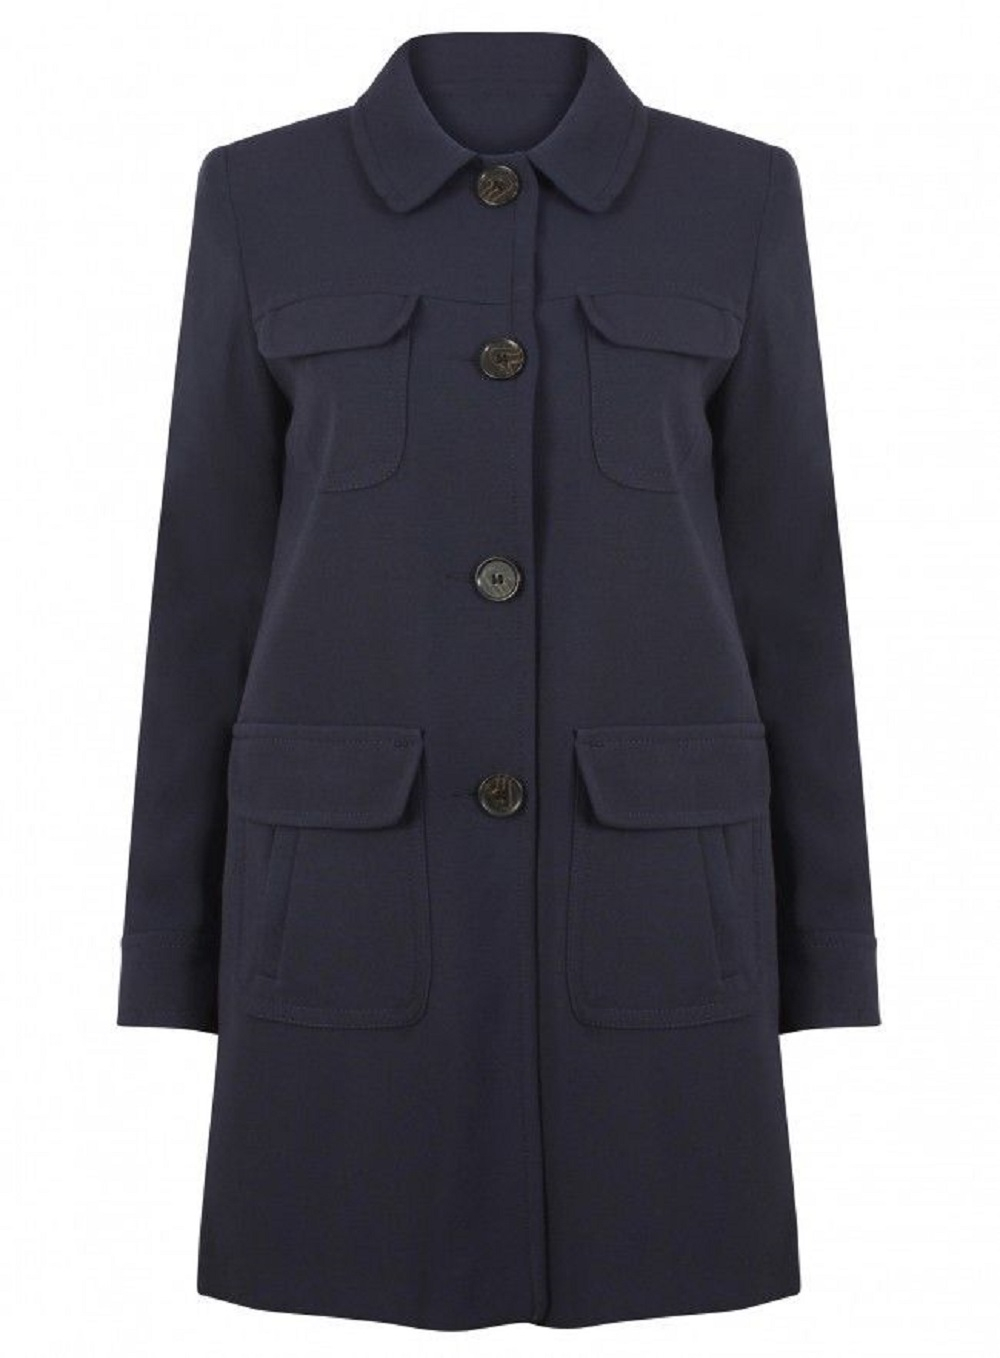 Anastasia-Womens Navy Blue Spring Fashion Coat